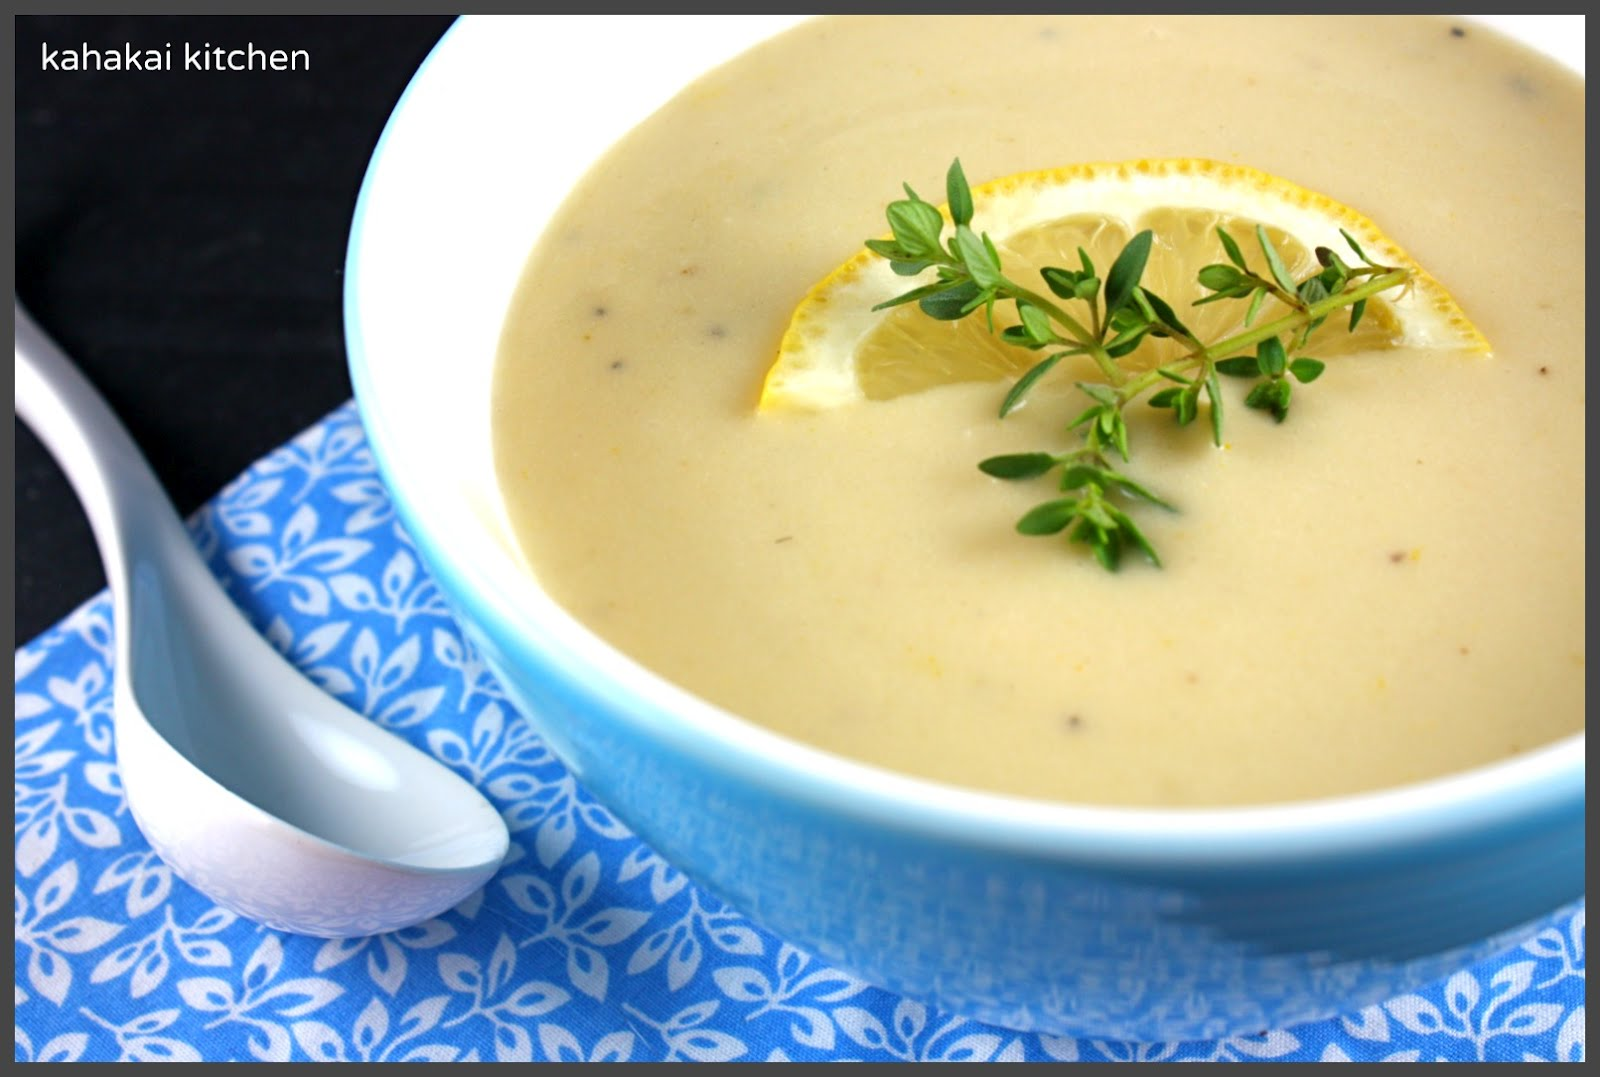 ... -Lemon Soup: Hot or Cold for Souper (Soup, Salad & Sammie) Sundays